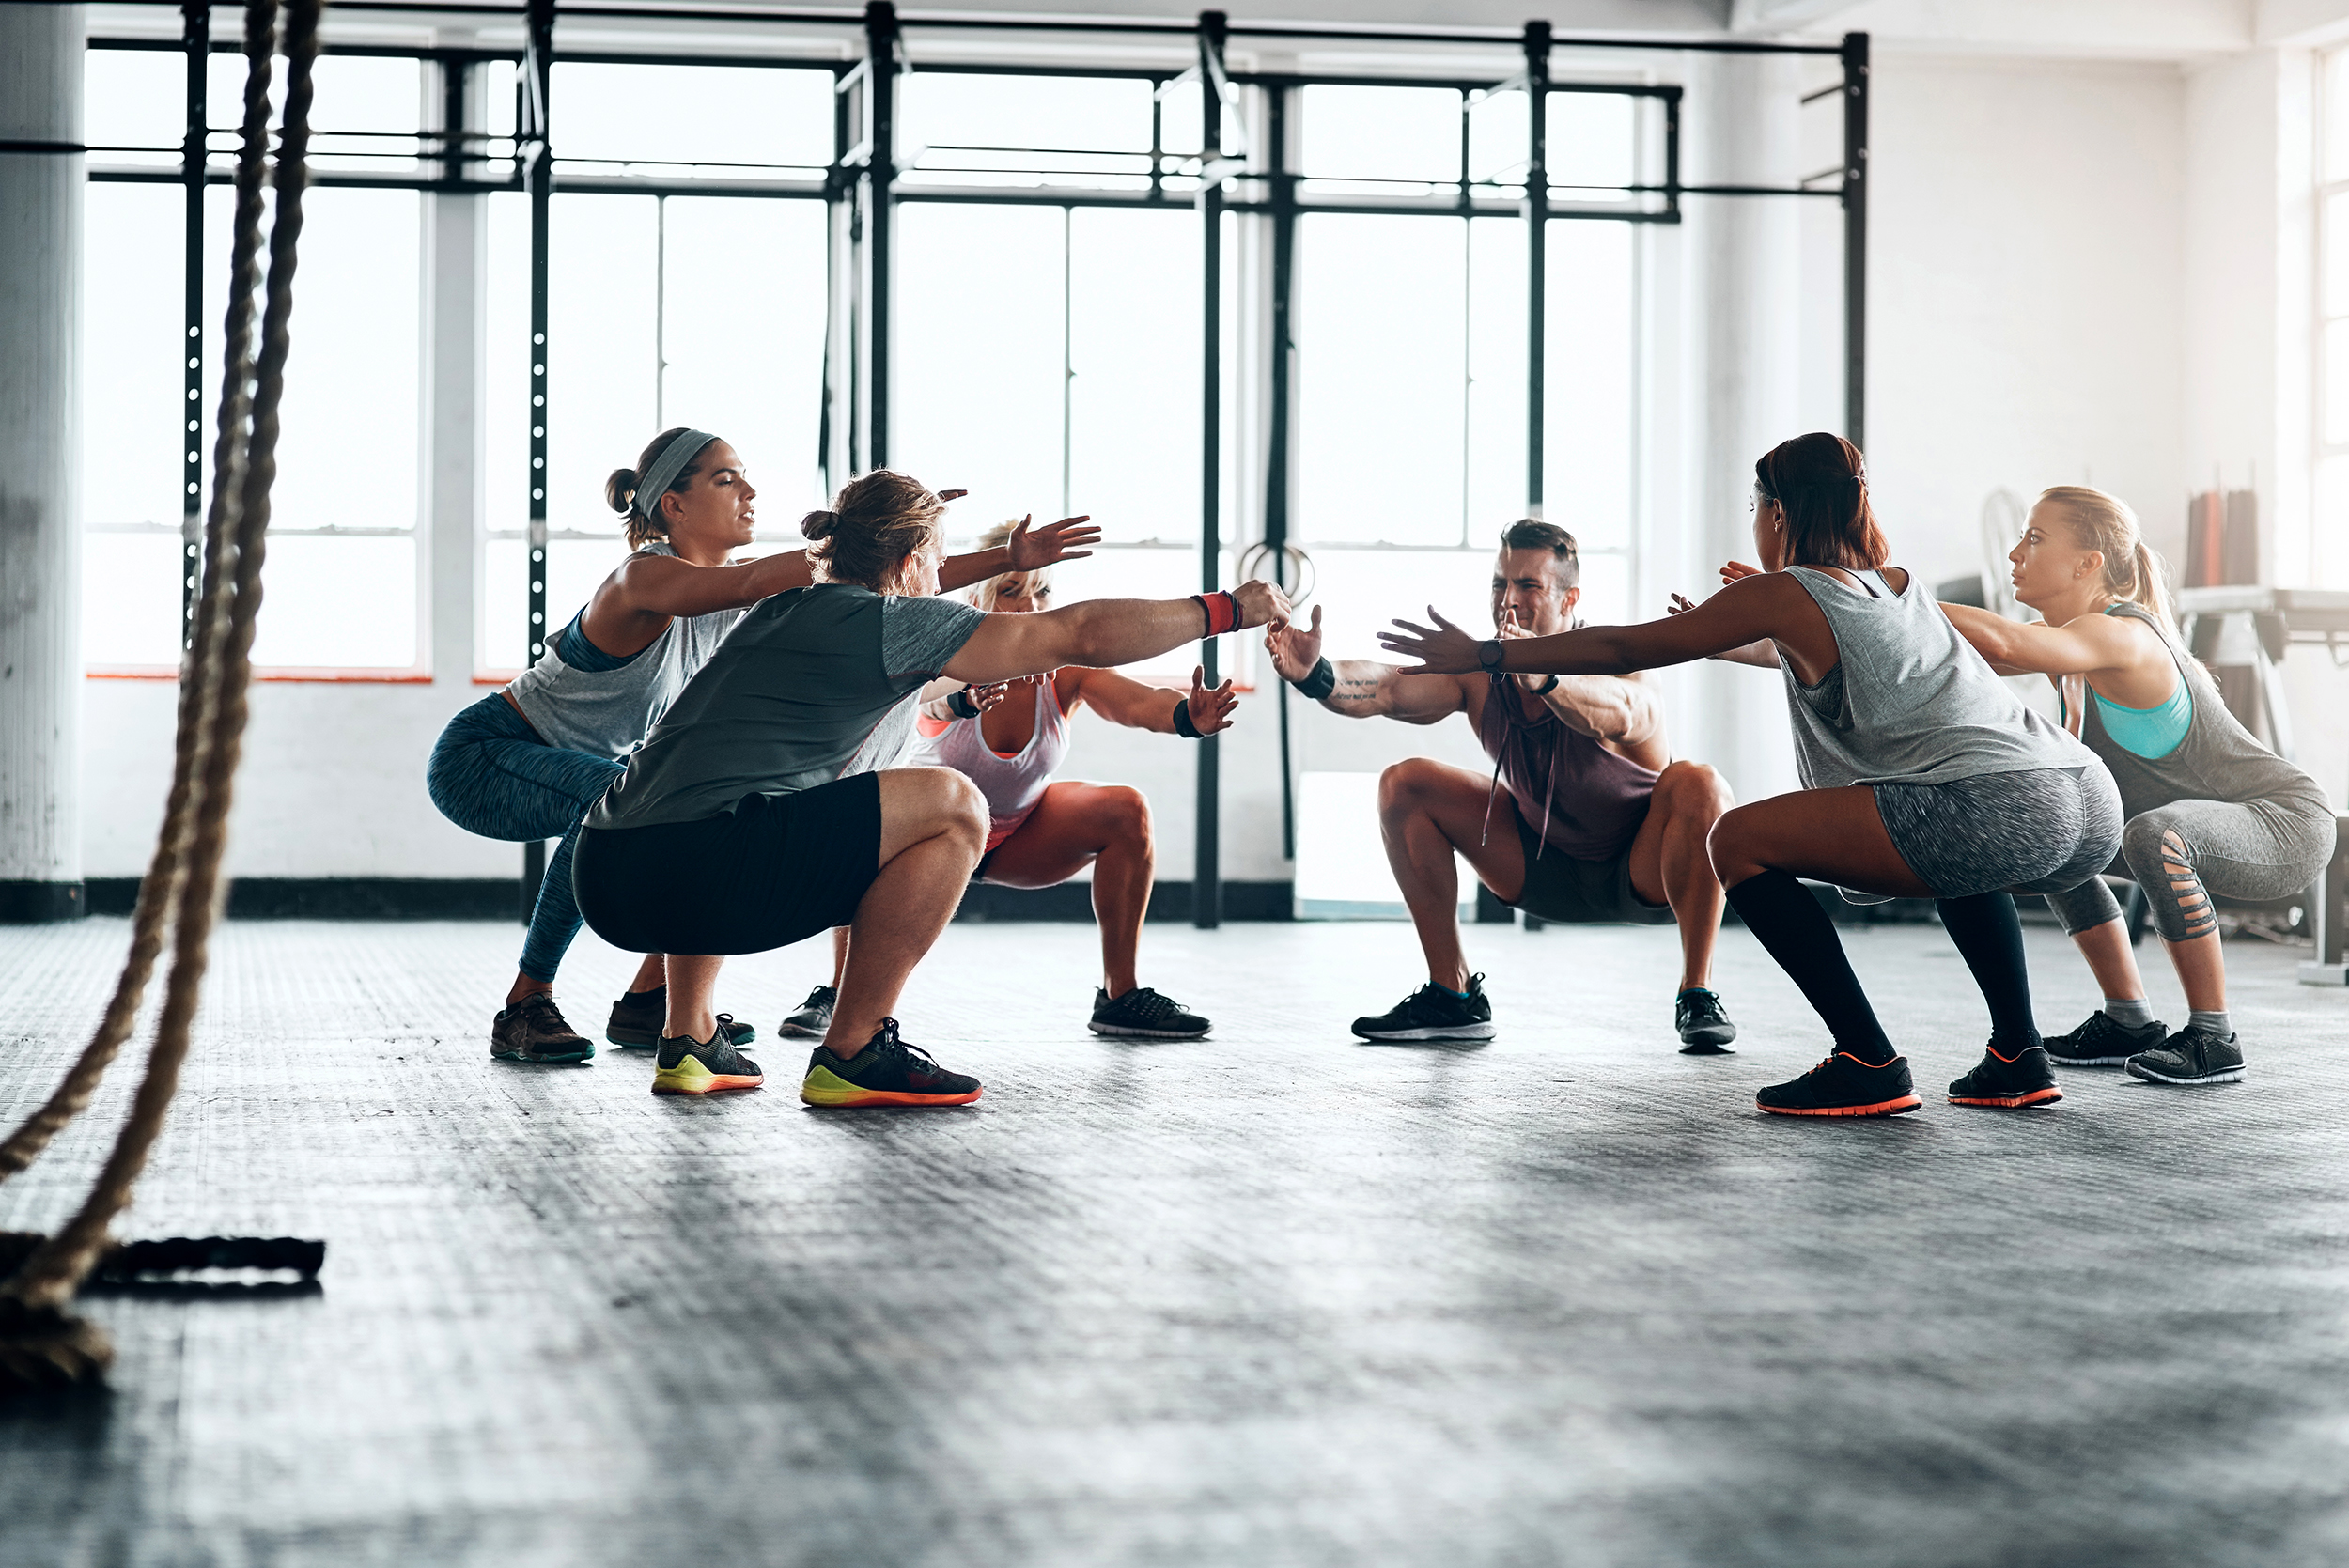 The health benefits of working out with a crowd